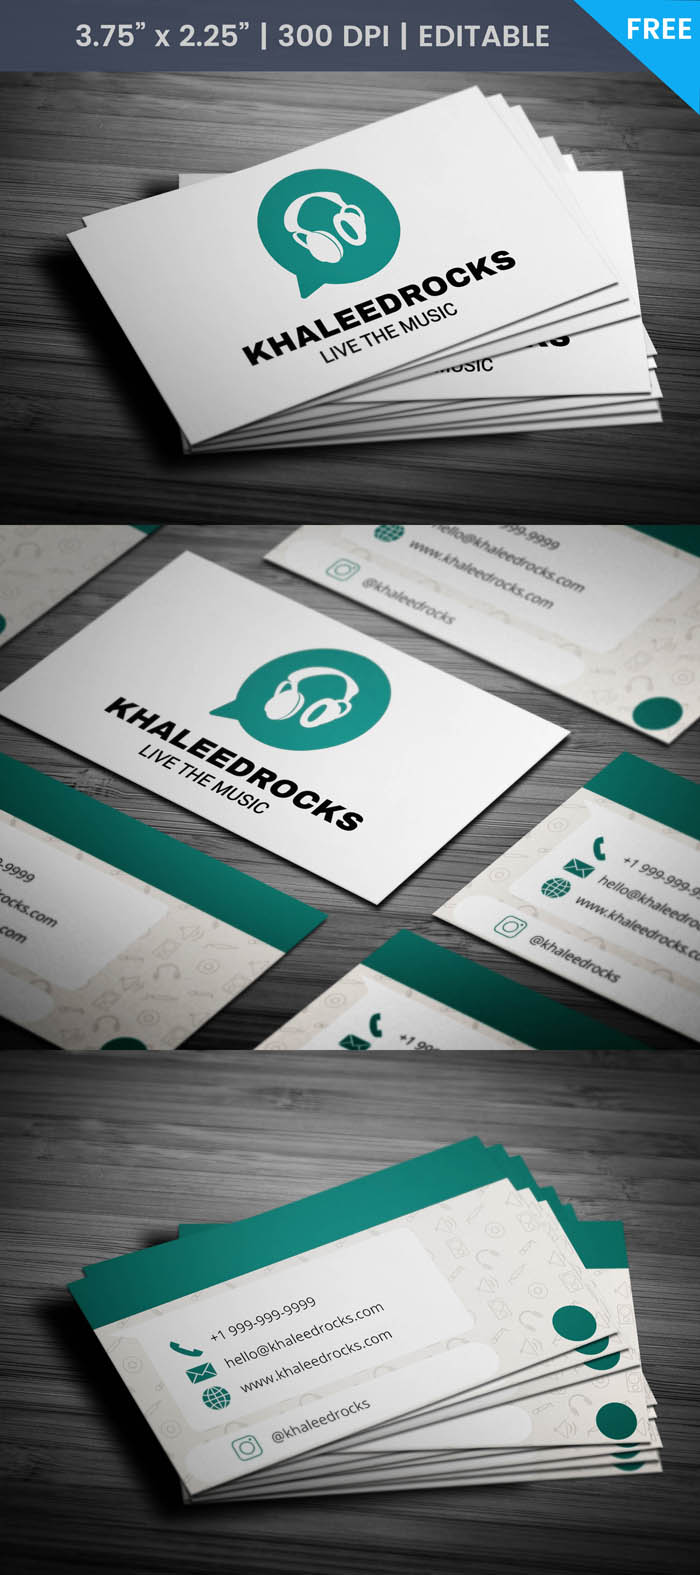 Free Whatsapp Themed Dj Business Card Template